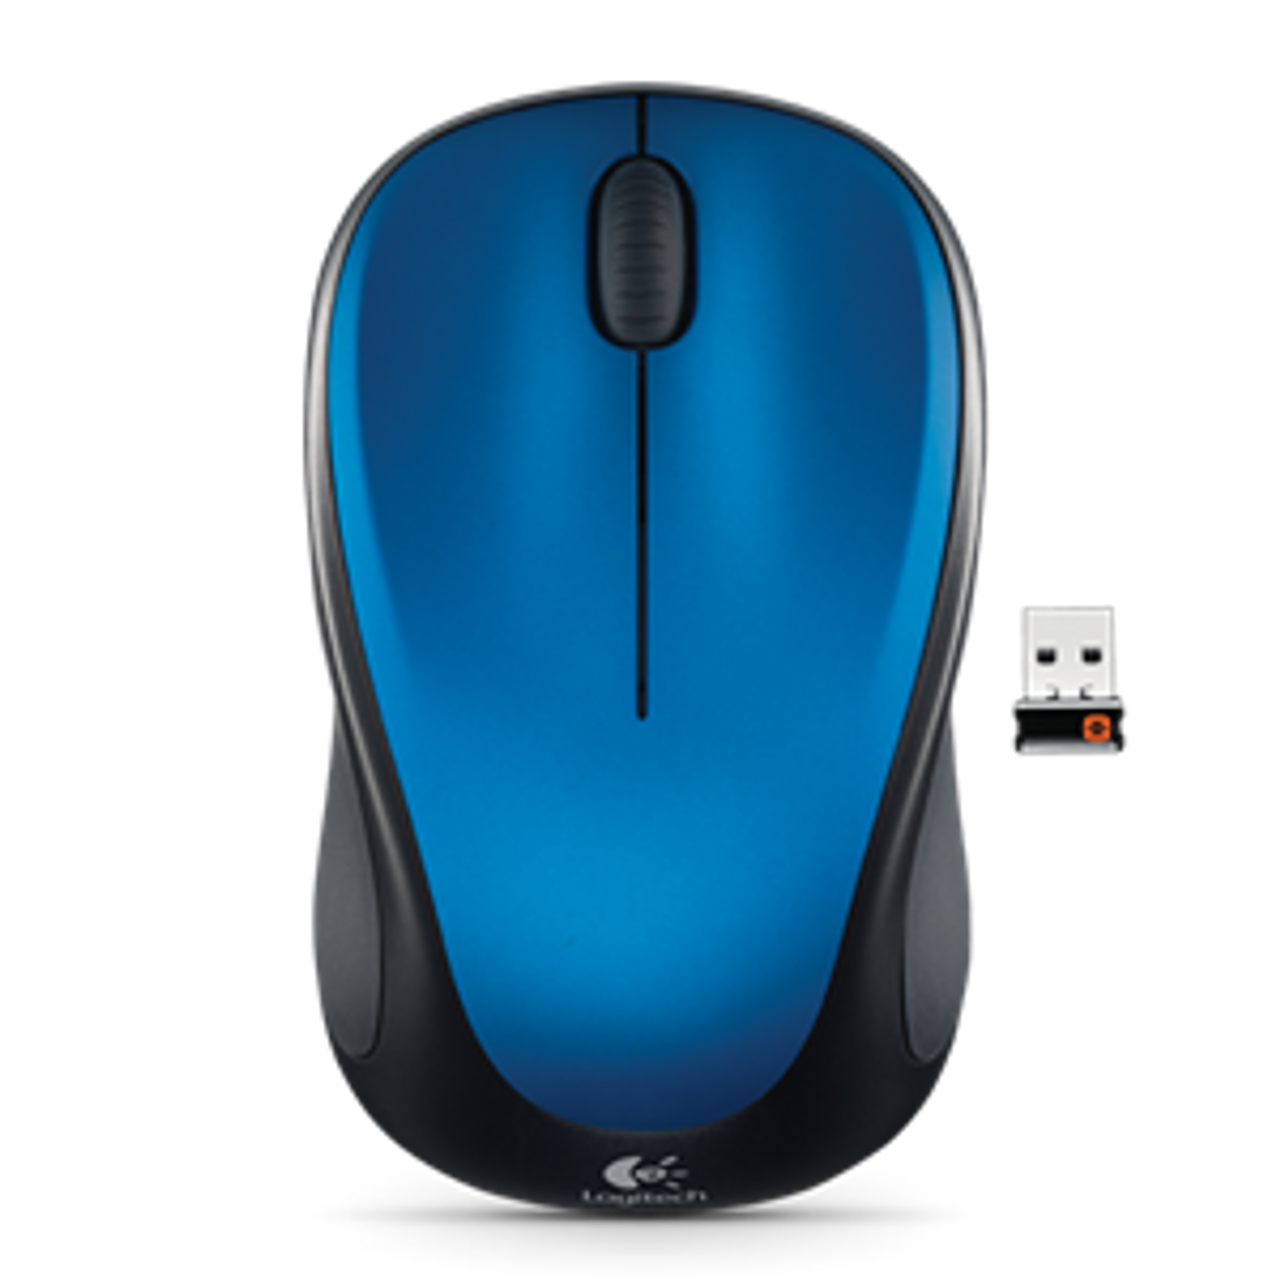 Product image for Logitech Wireless Mouse M235 - Blue | CX Computer Superstore